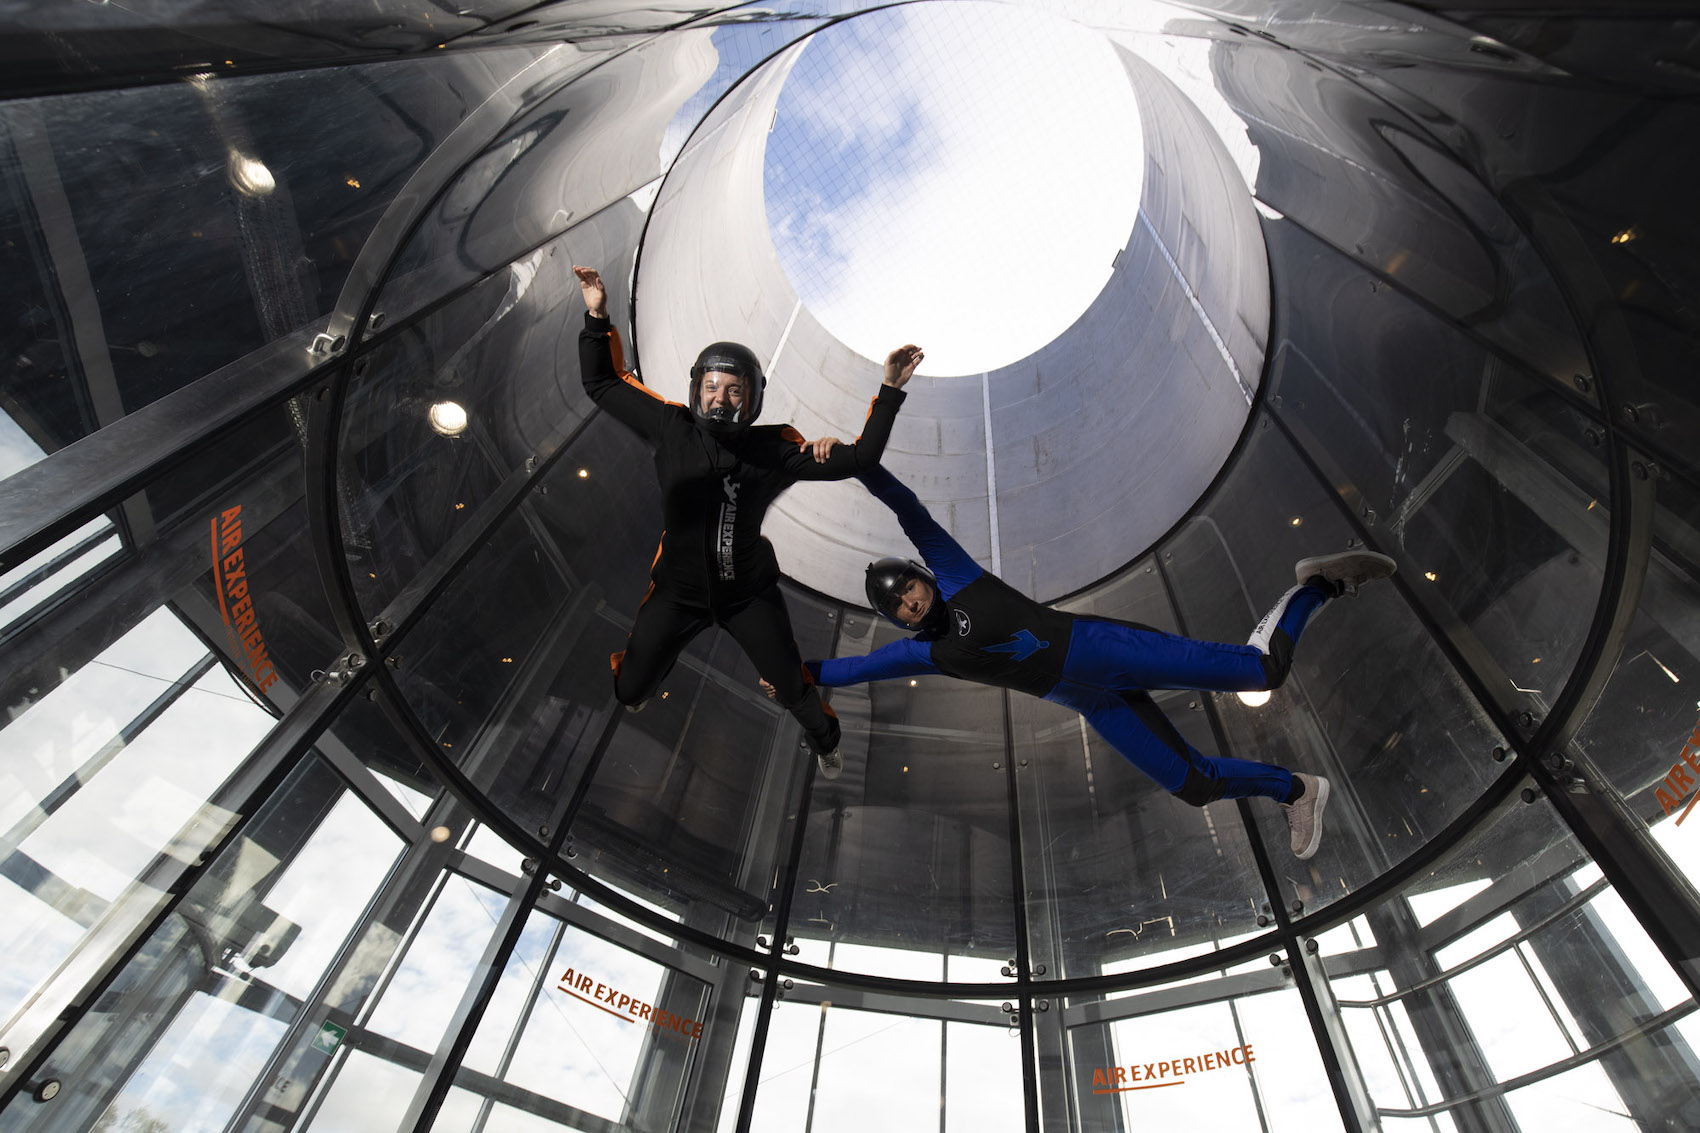 who can fly indoor skydiving